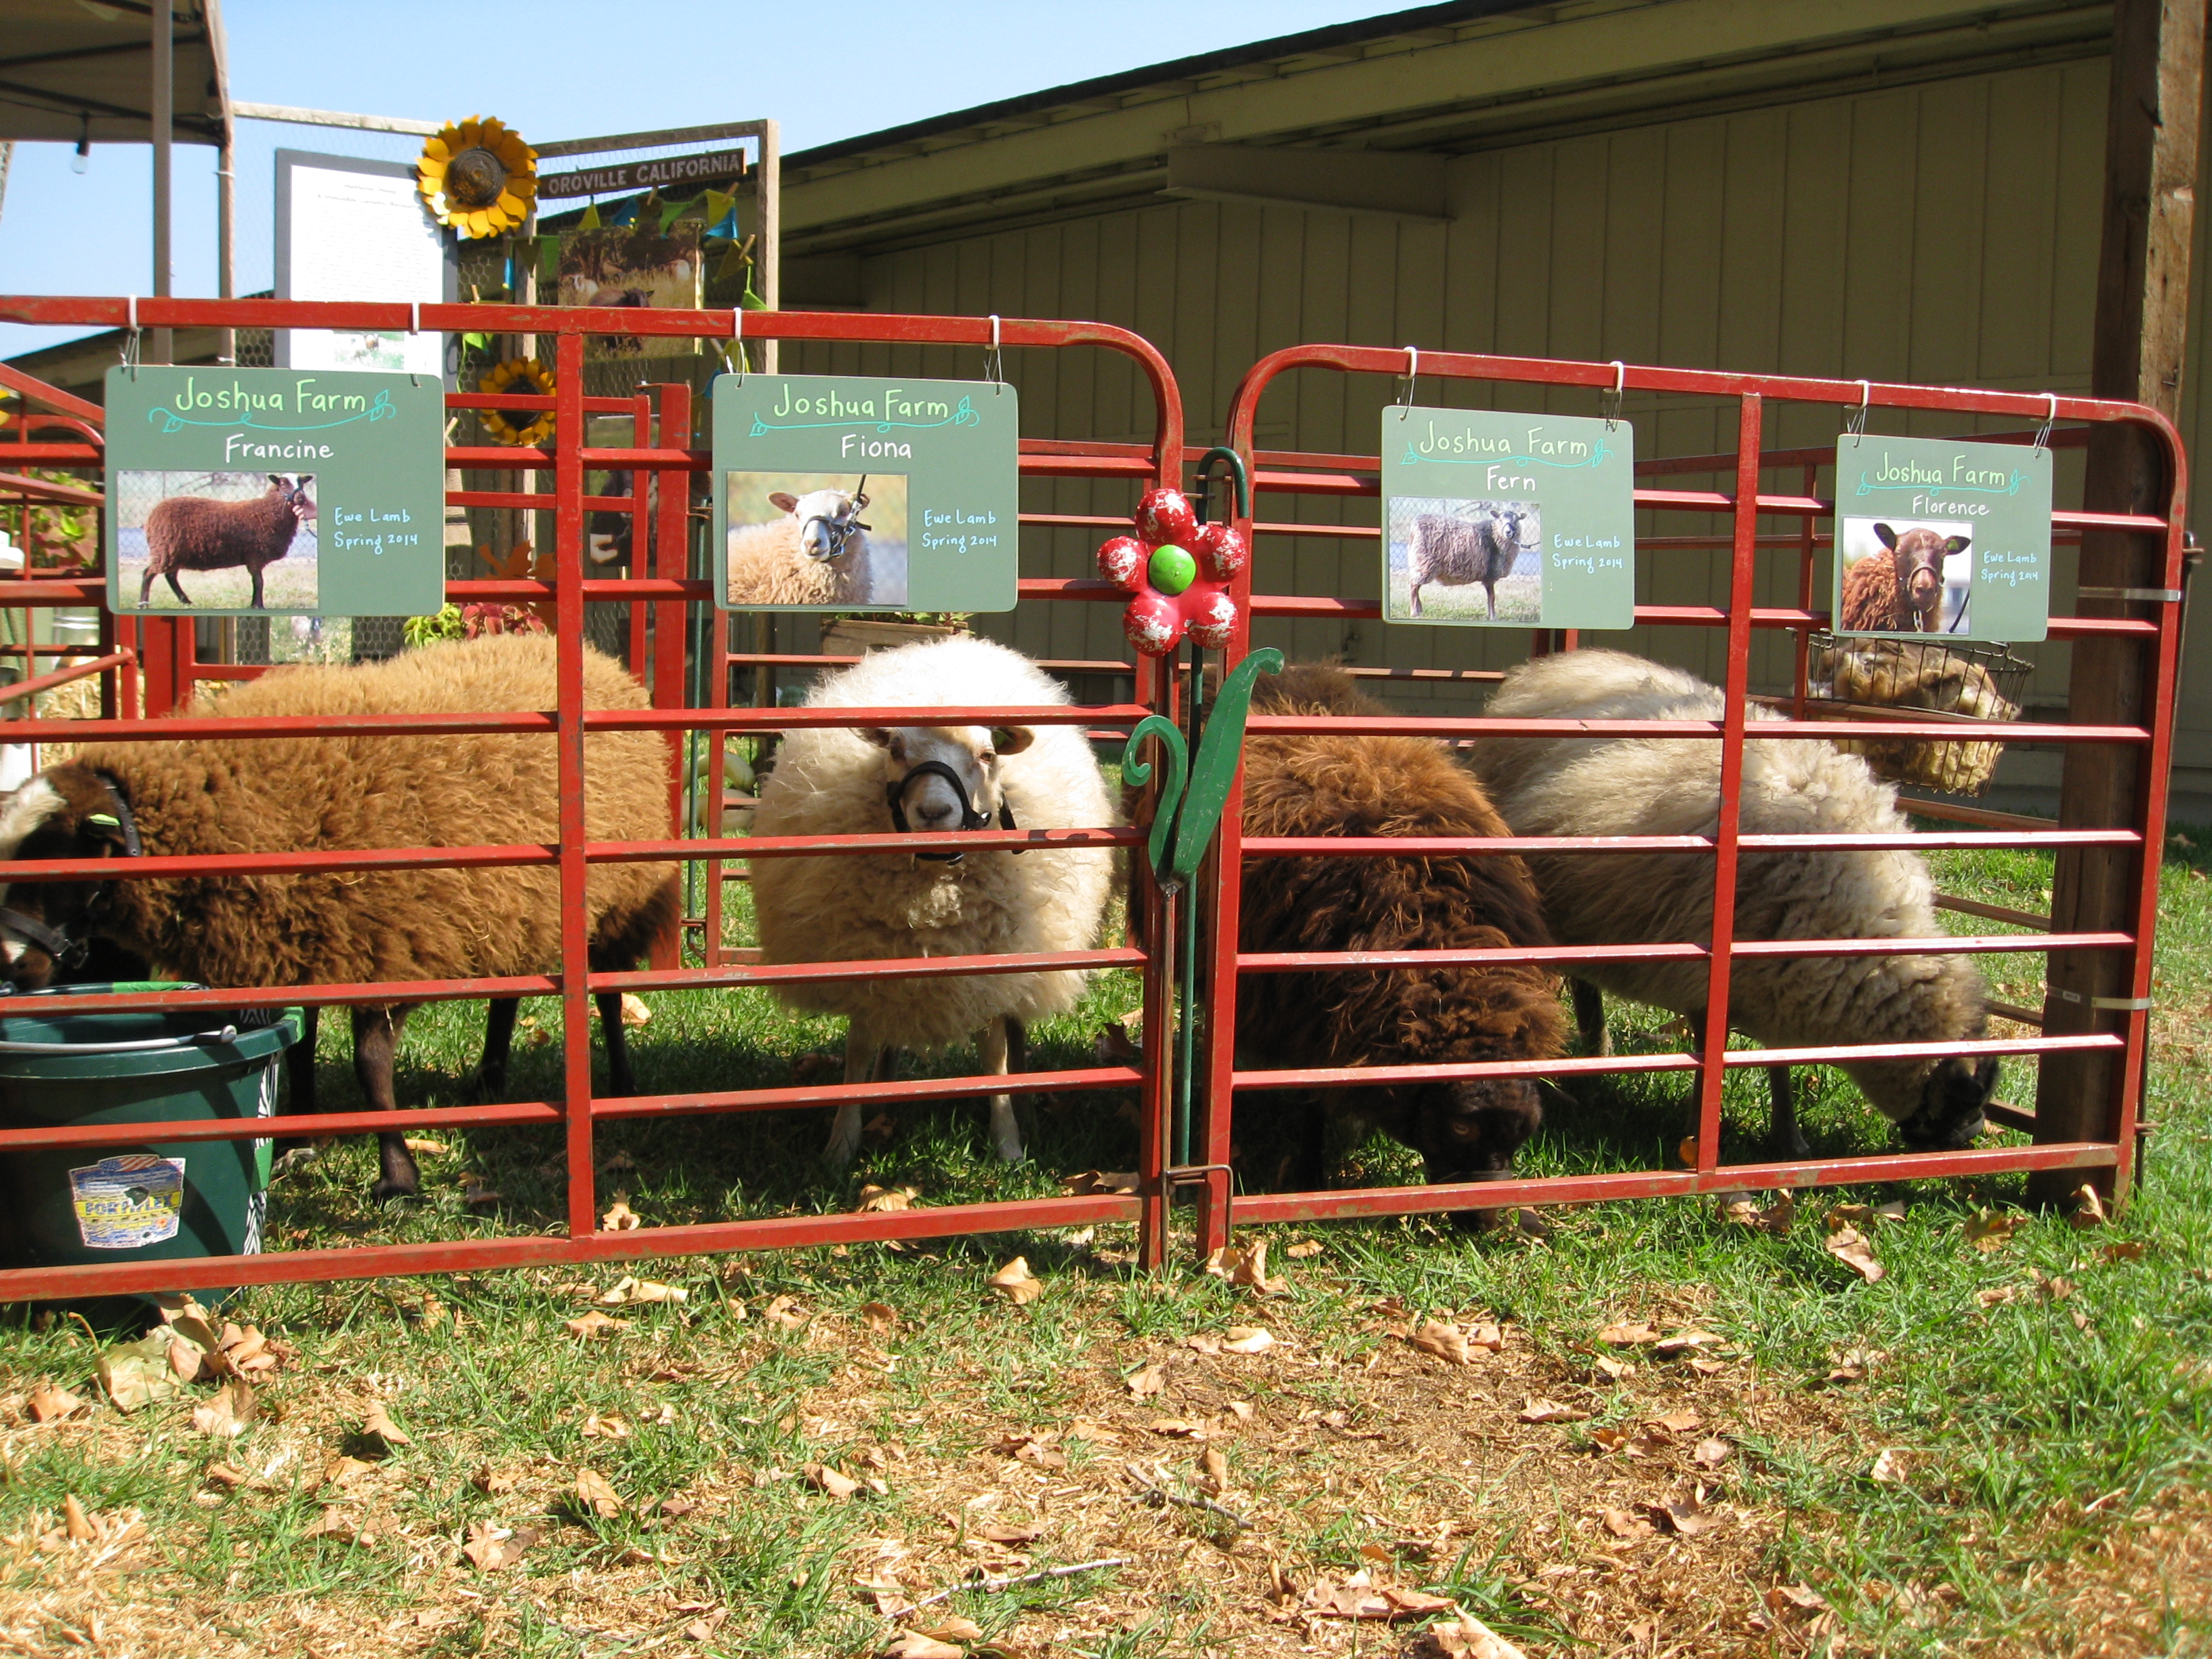 Joshua Farms showcased their sheep. Women were sitting close by spinning wool and knitting cozies.